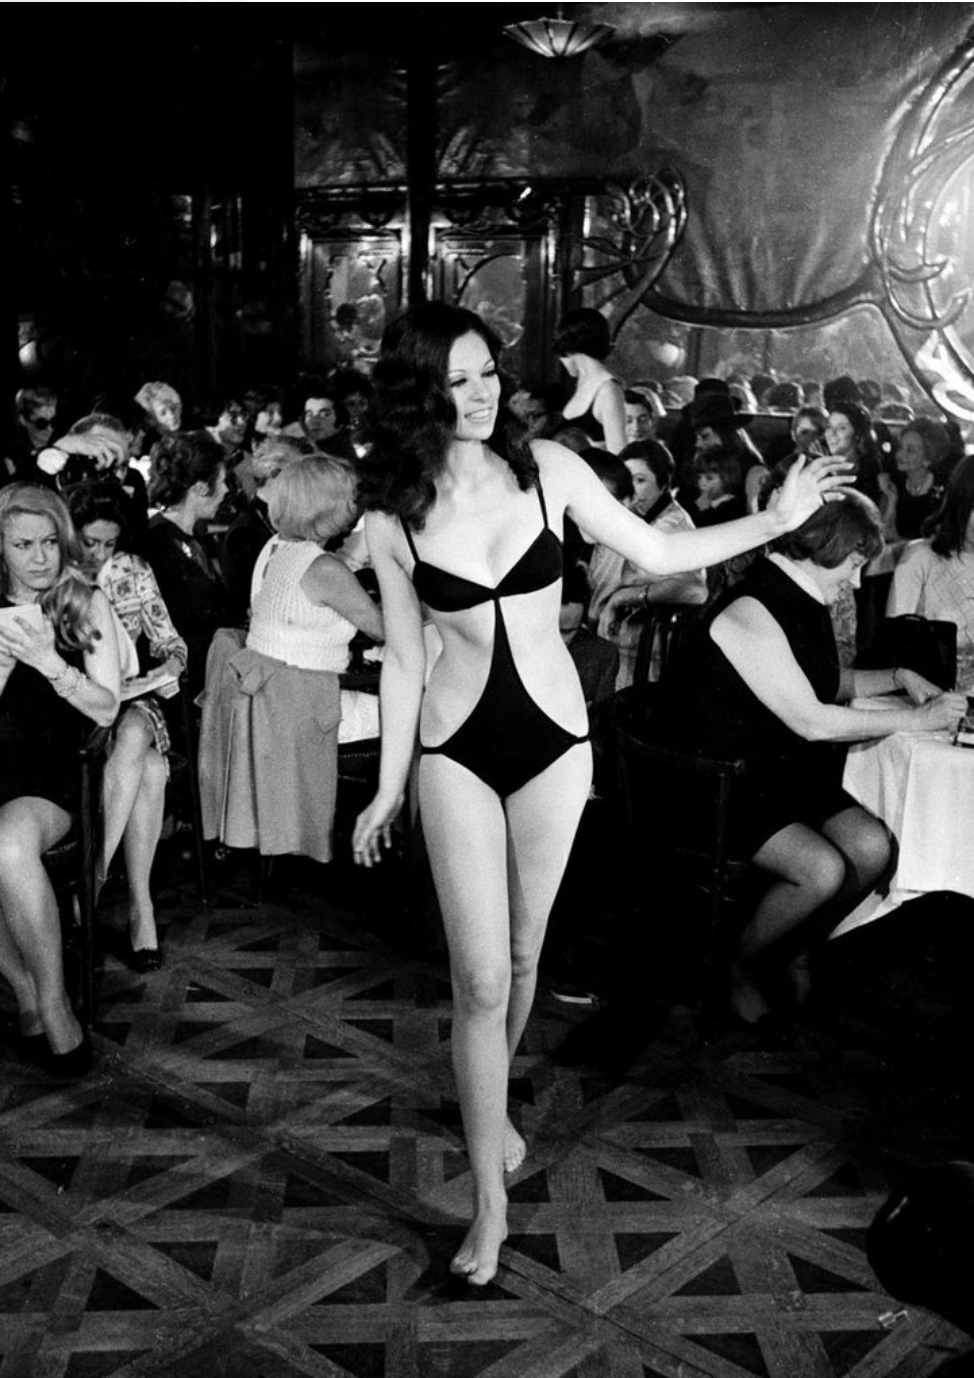 A swimsuit design by Elizabeth Taylor for Mia-Vicky at the Maxim's show in Paris, January 1968.